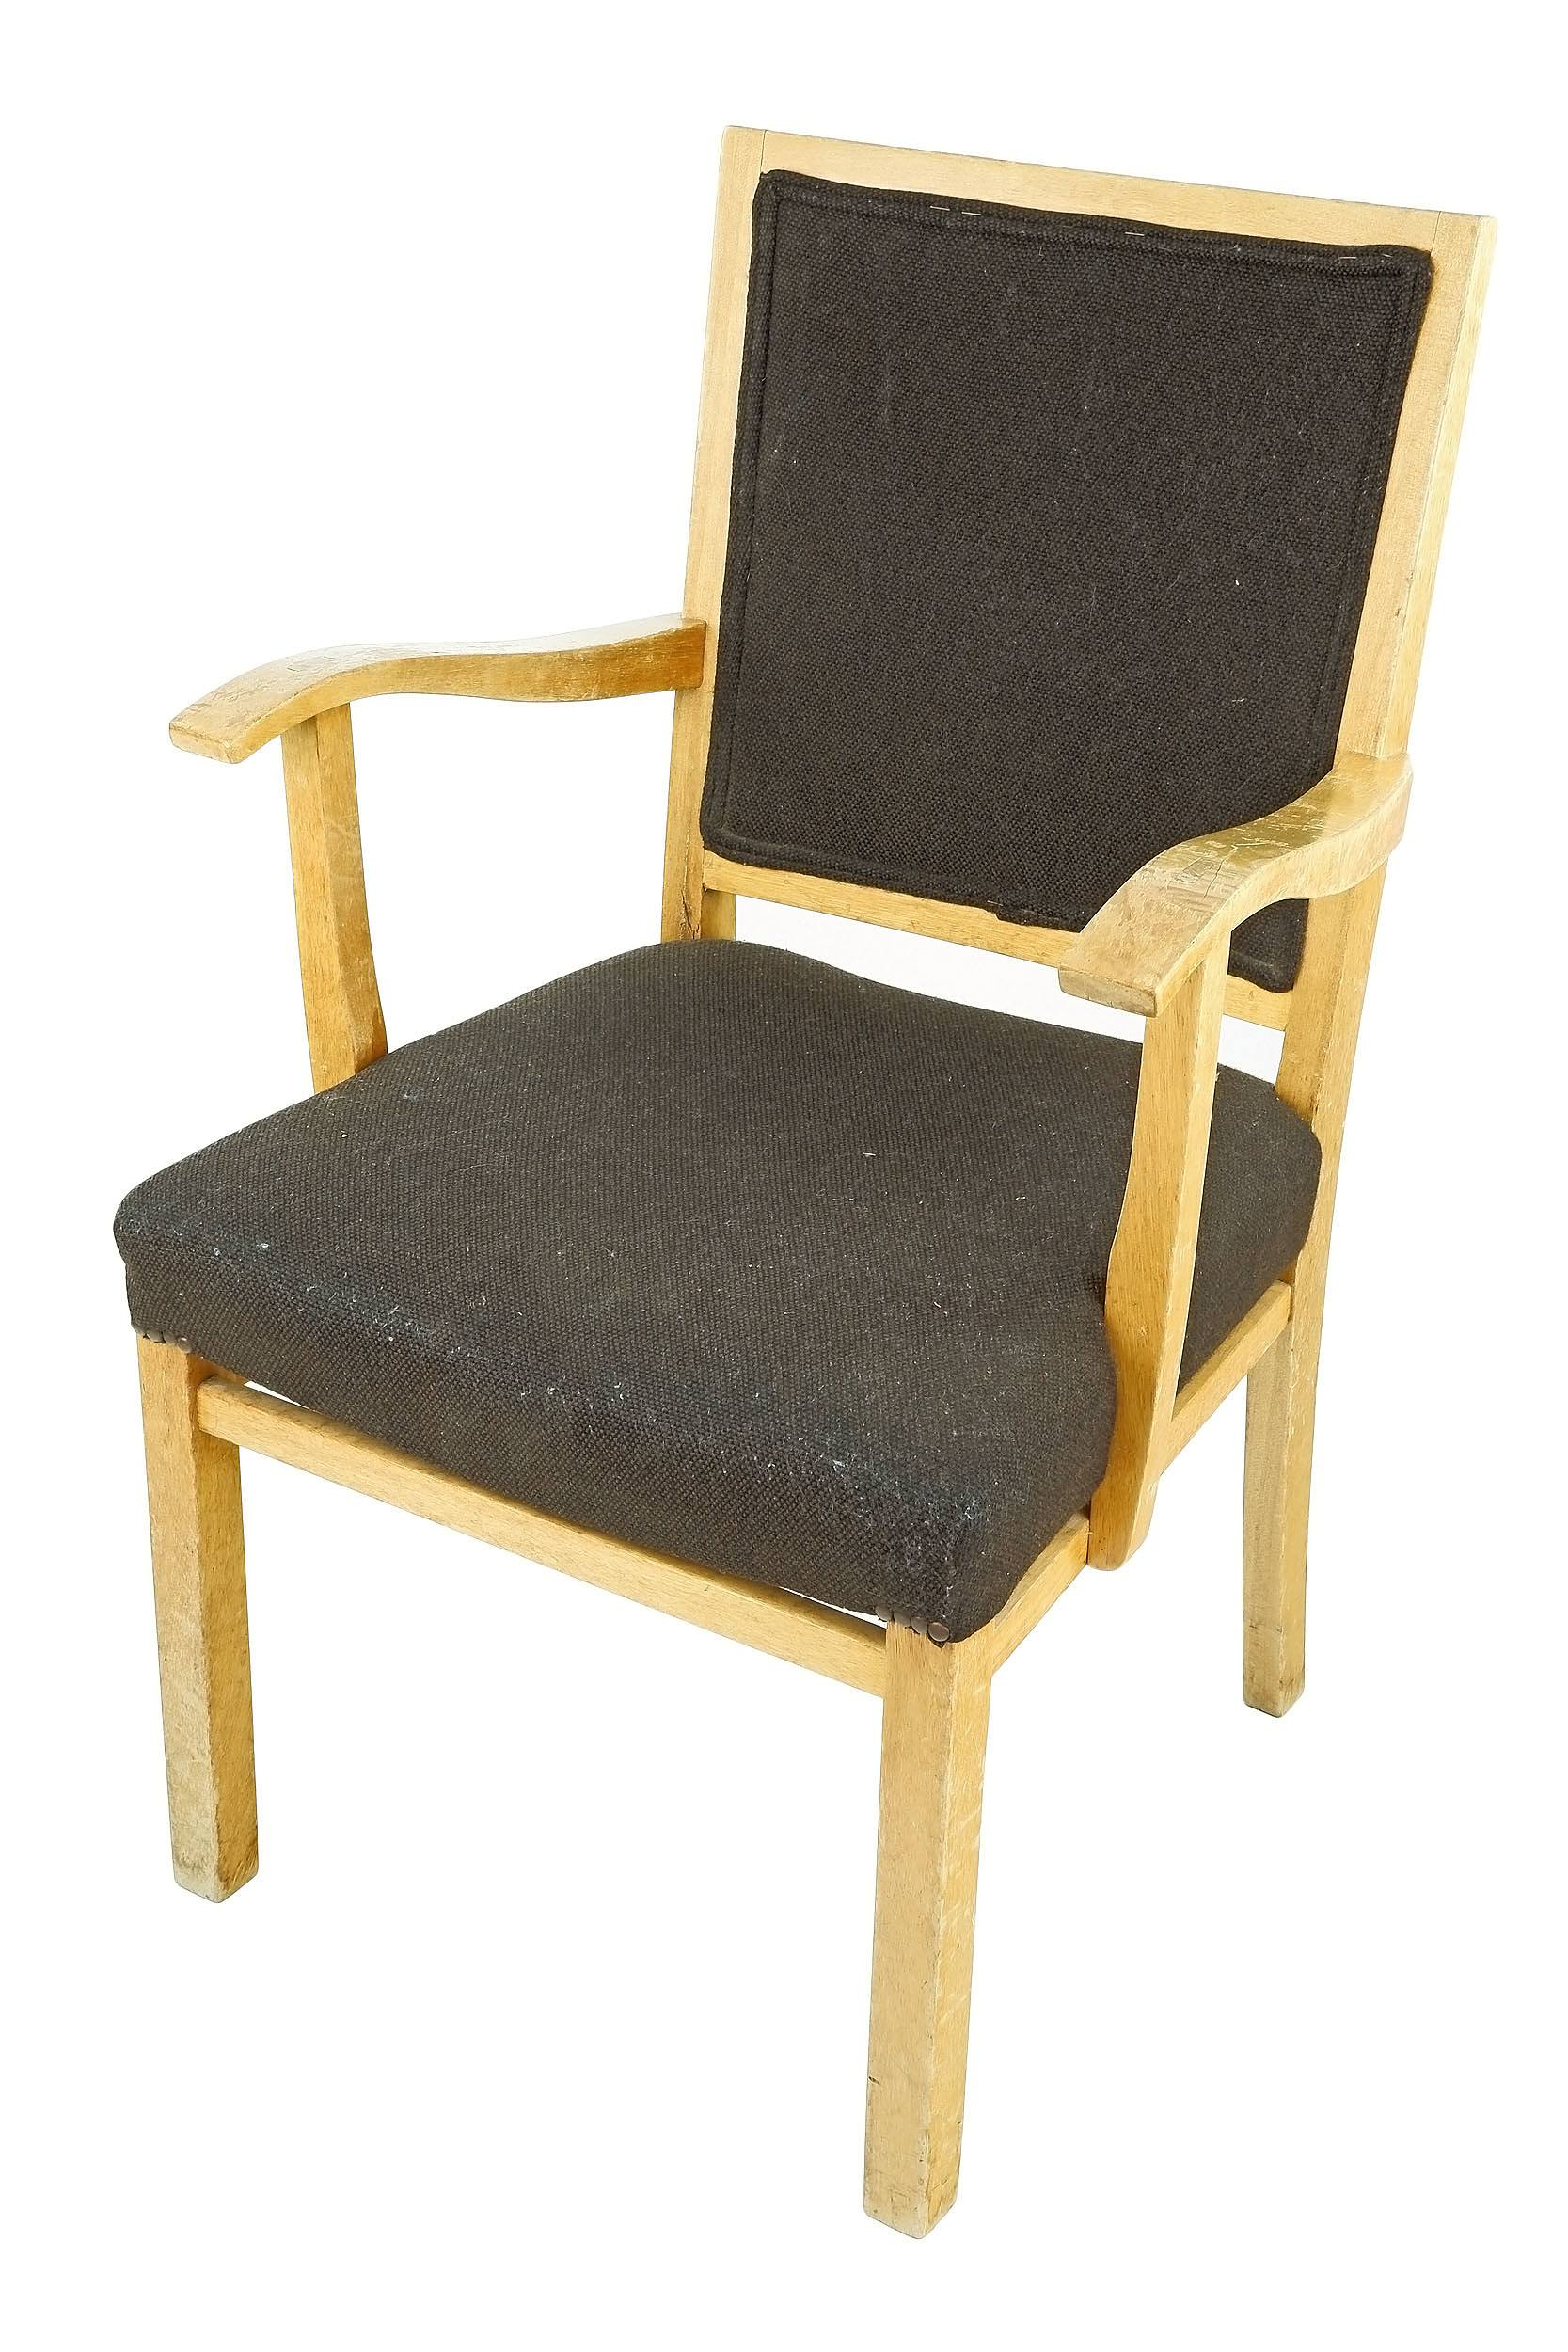 'Fred Ward Maple Armchair, Probably Manufactured by Kees Westra 1950s'